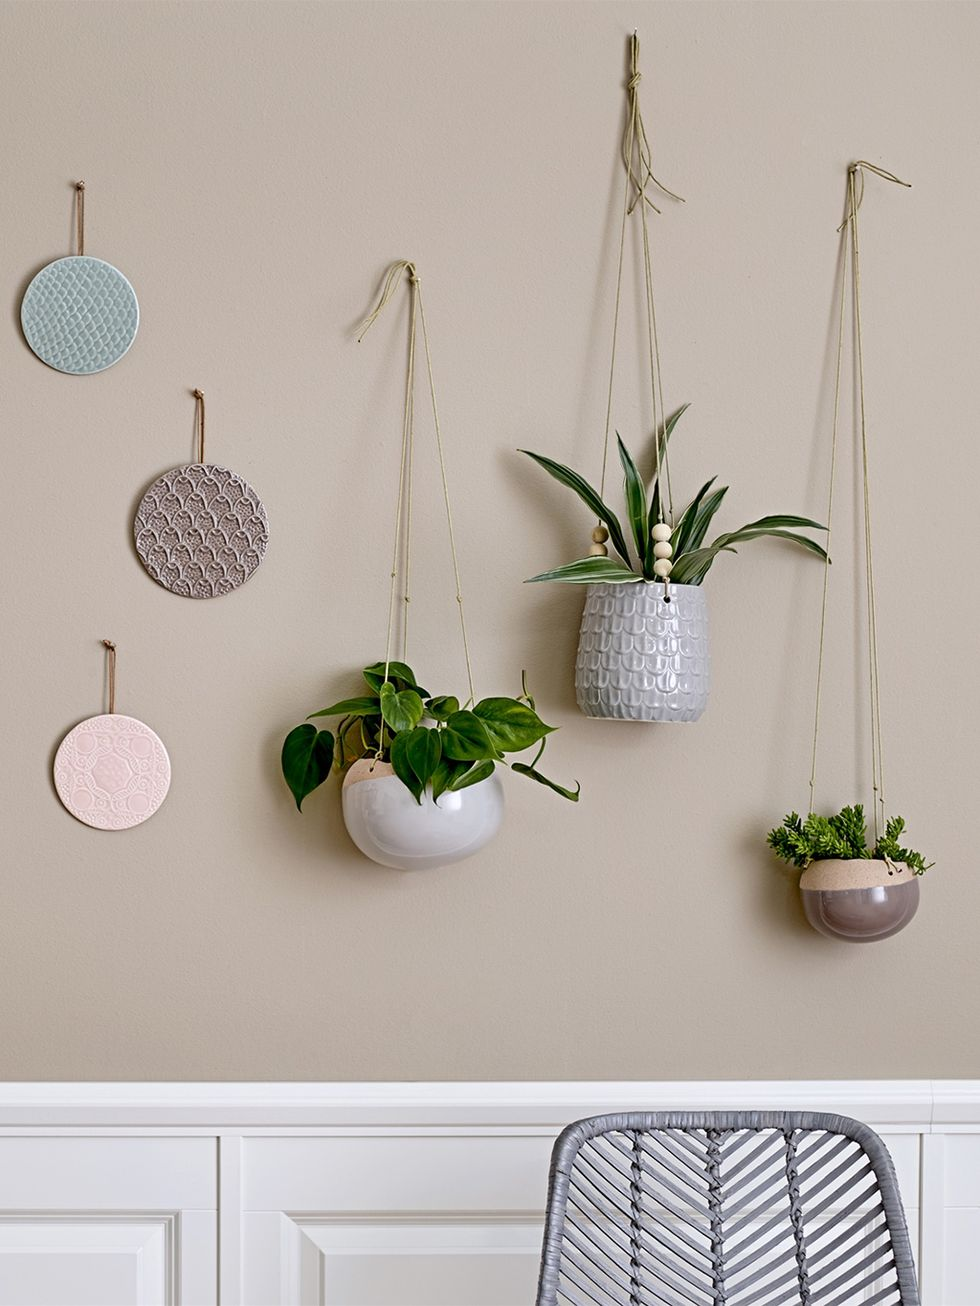 13 Amazing Ideas to Decorate the Walls of Your House